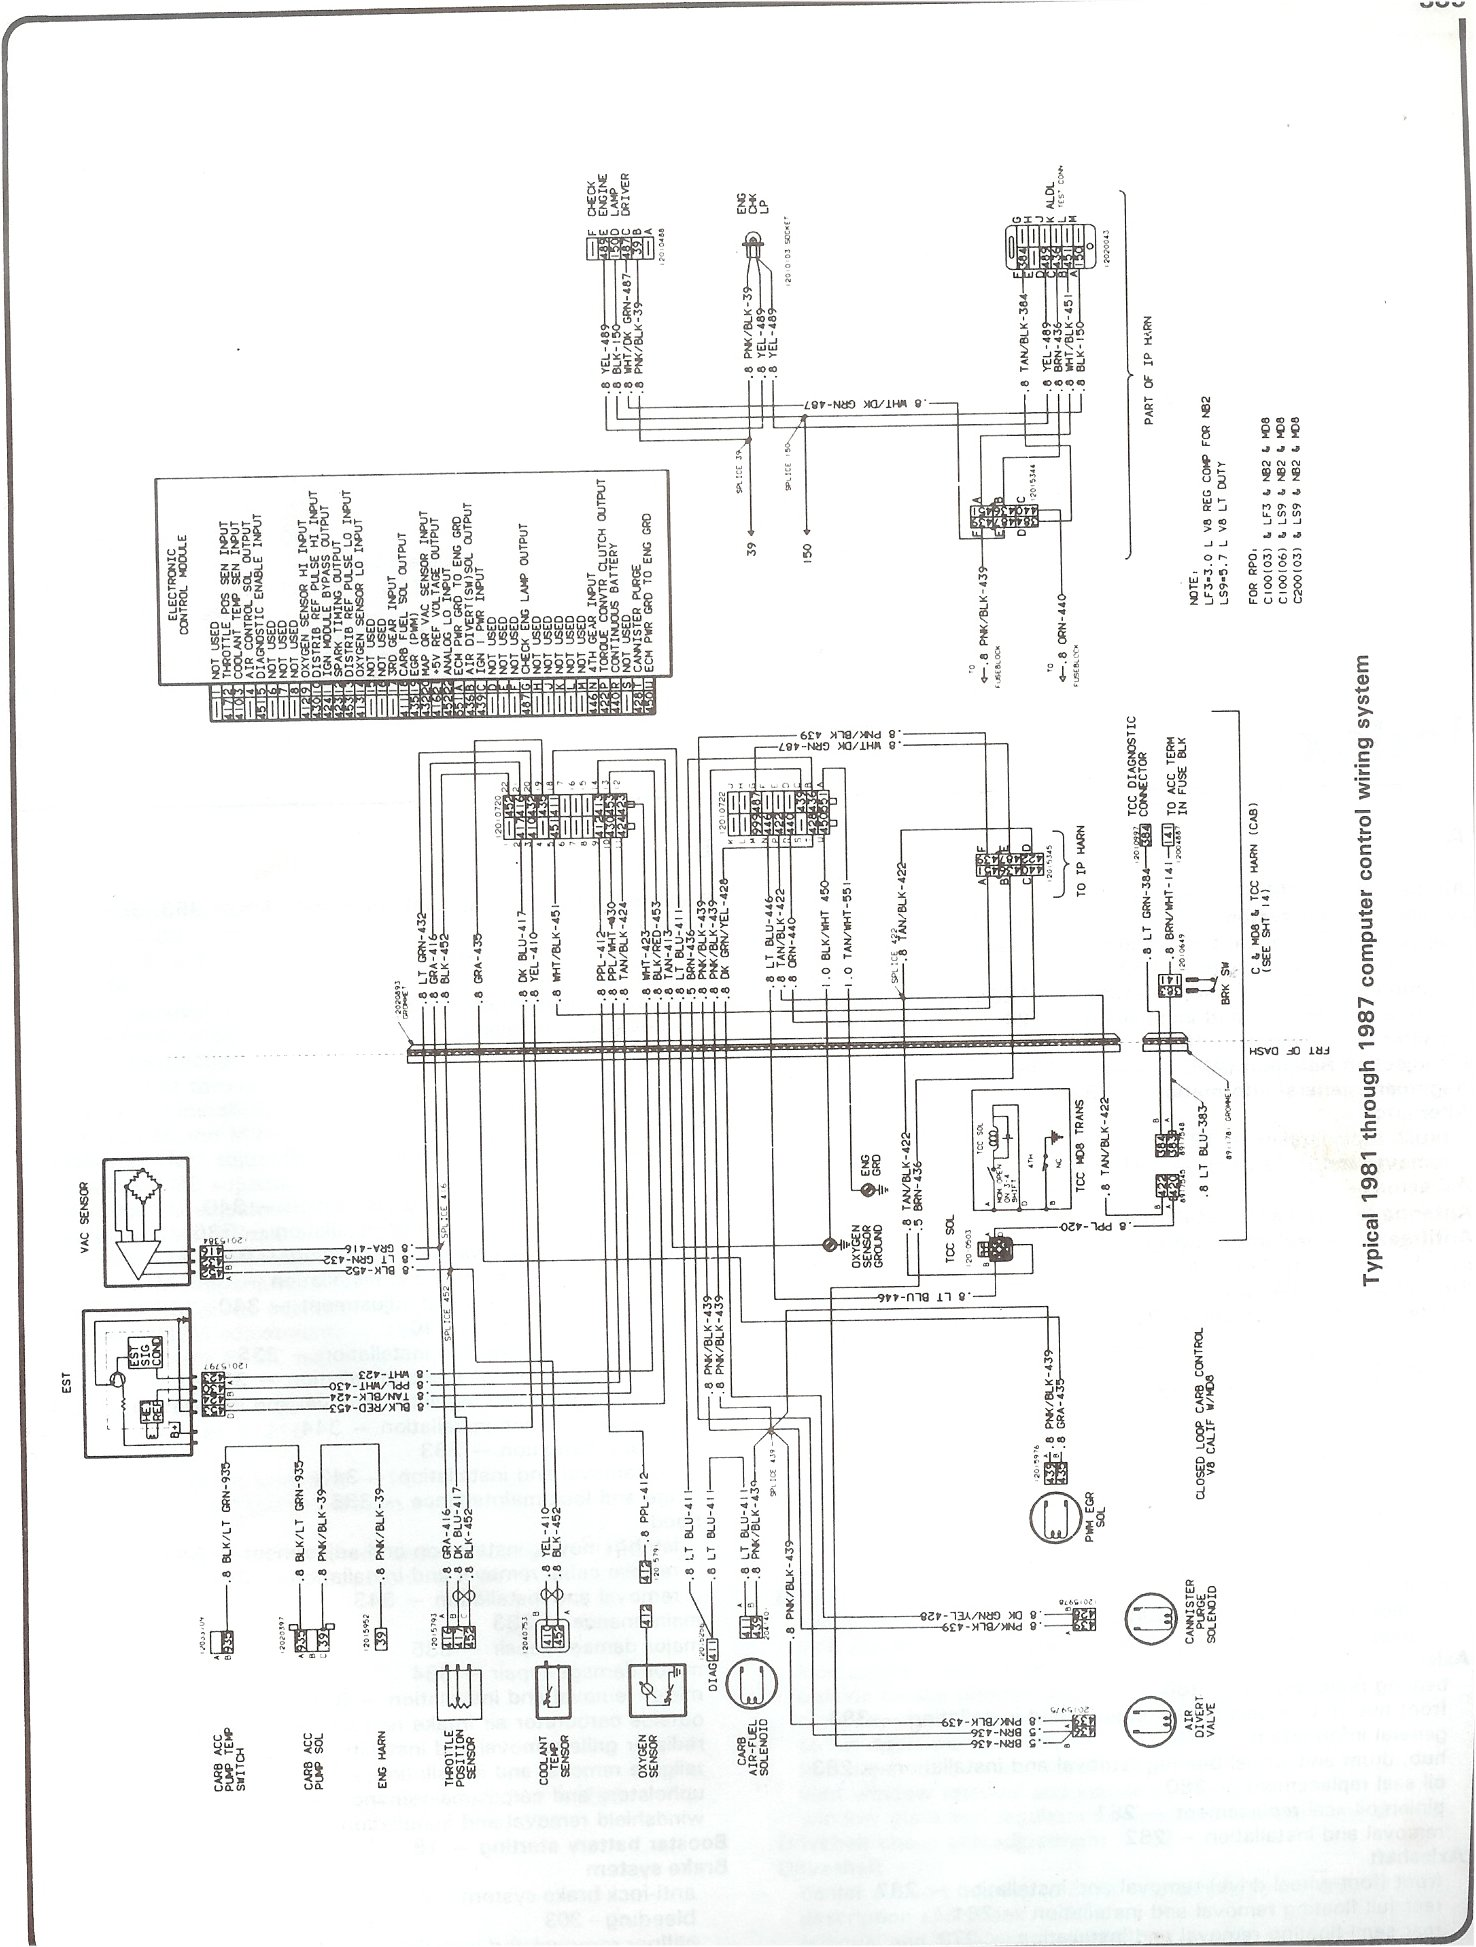 81 87_computer_control_wiring complete 73 87 wiring diagrams 1985 chevy truck wiring diagram at creativeand.co